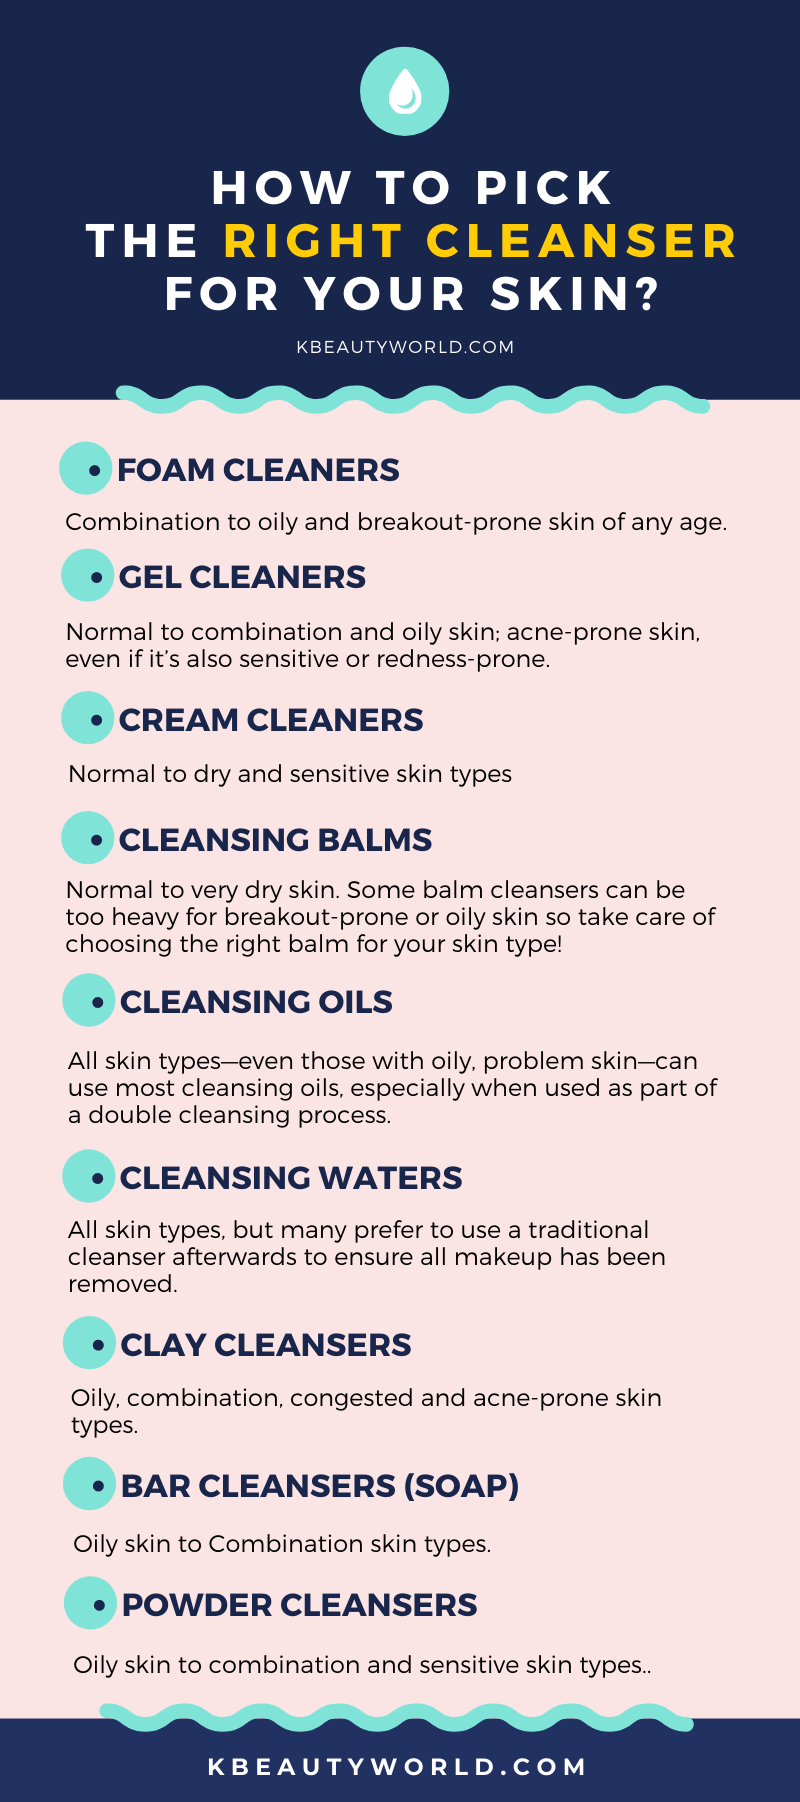 9 Different Types Of Cleansers For All Skin Types Skin Cleanser Products Oil For Dry Skin Skin Types